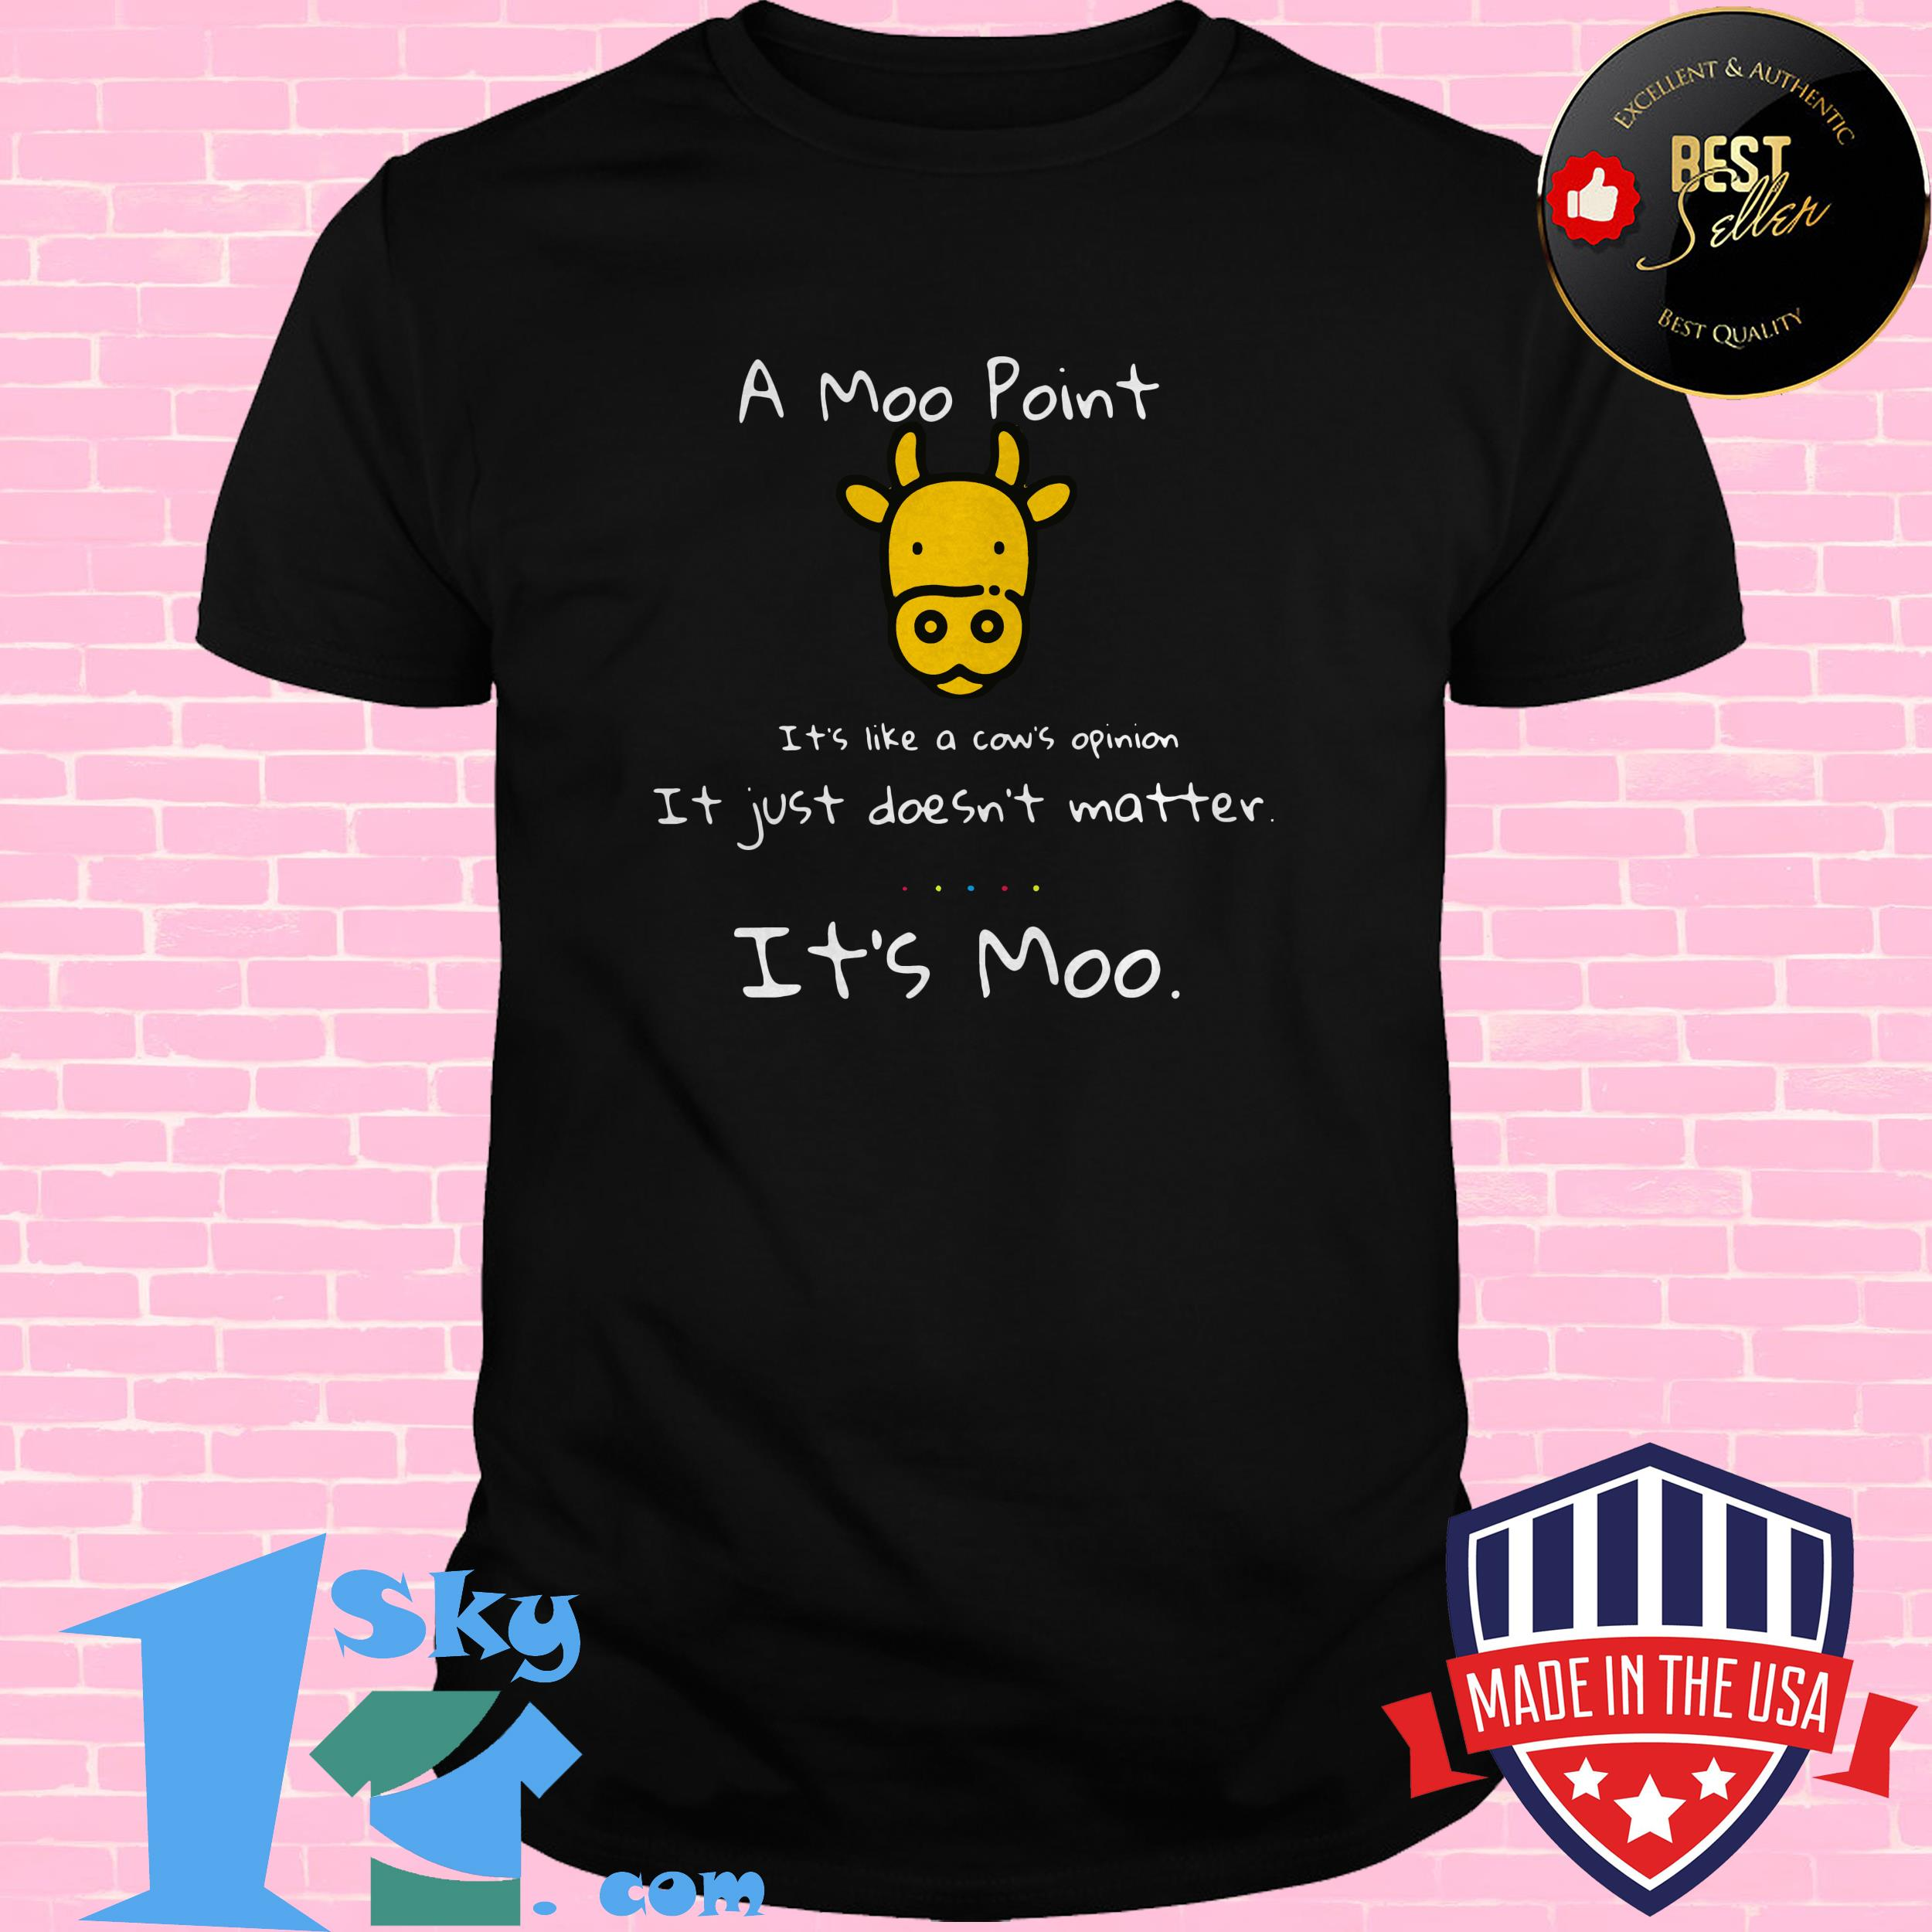 a moo point its like a cows opinion it just doesnt matter its moo shirt - A moo point its like a cows opinion it just doesn't matter it's moo shirt